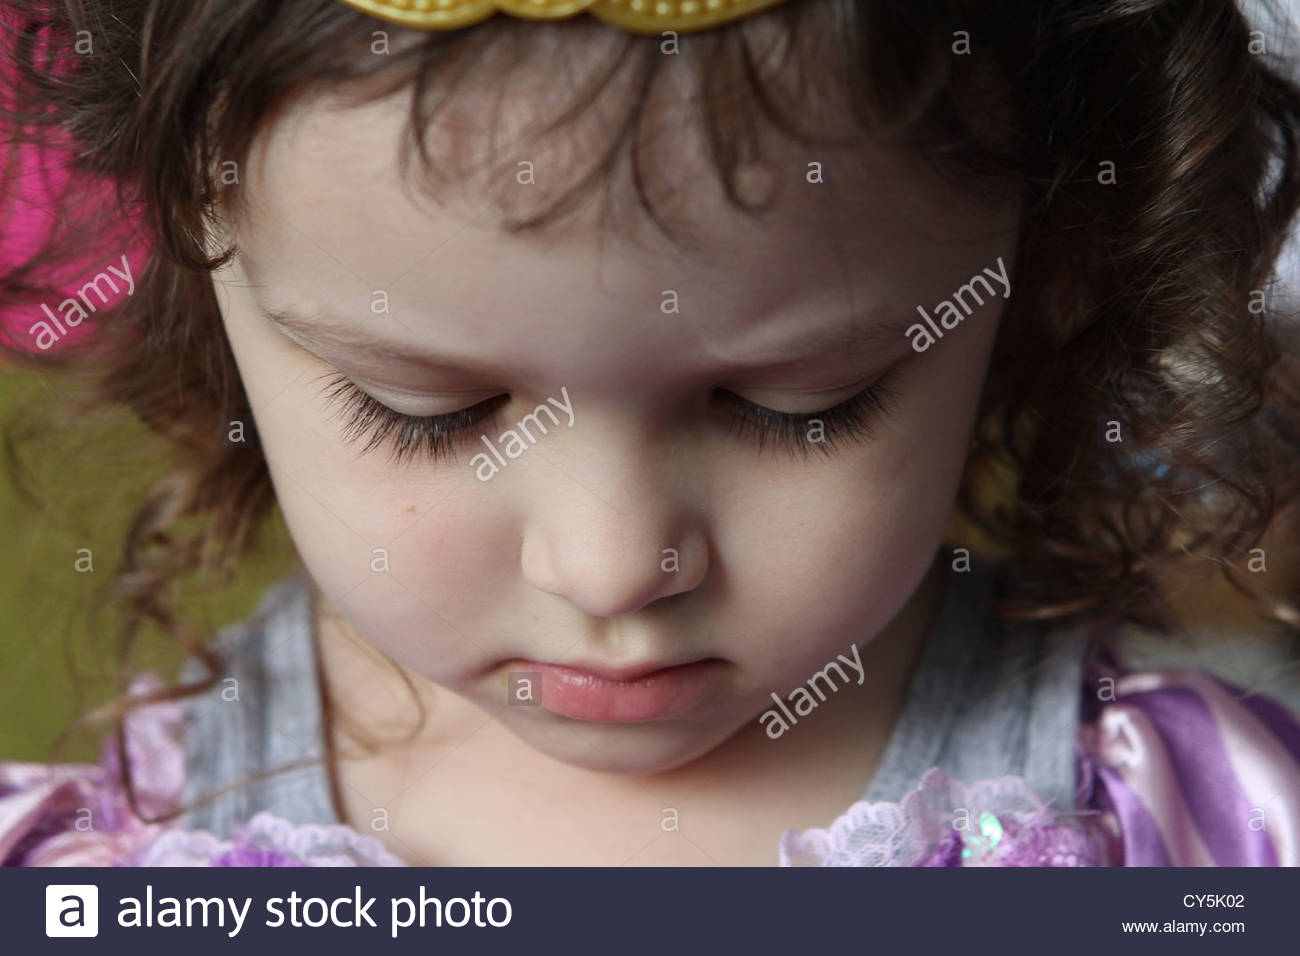 A close up of the face of a 4 year old girl with downcast eyes. - Stock Image